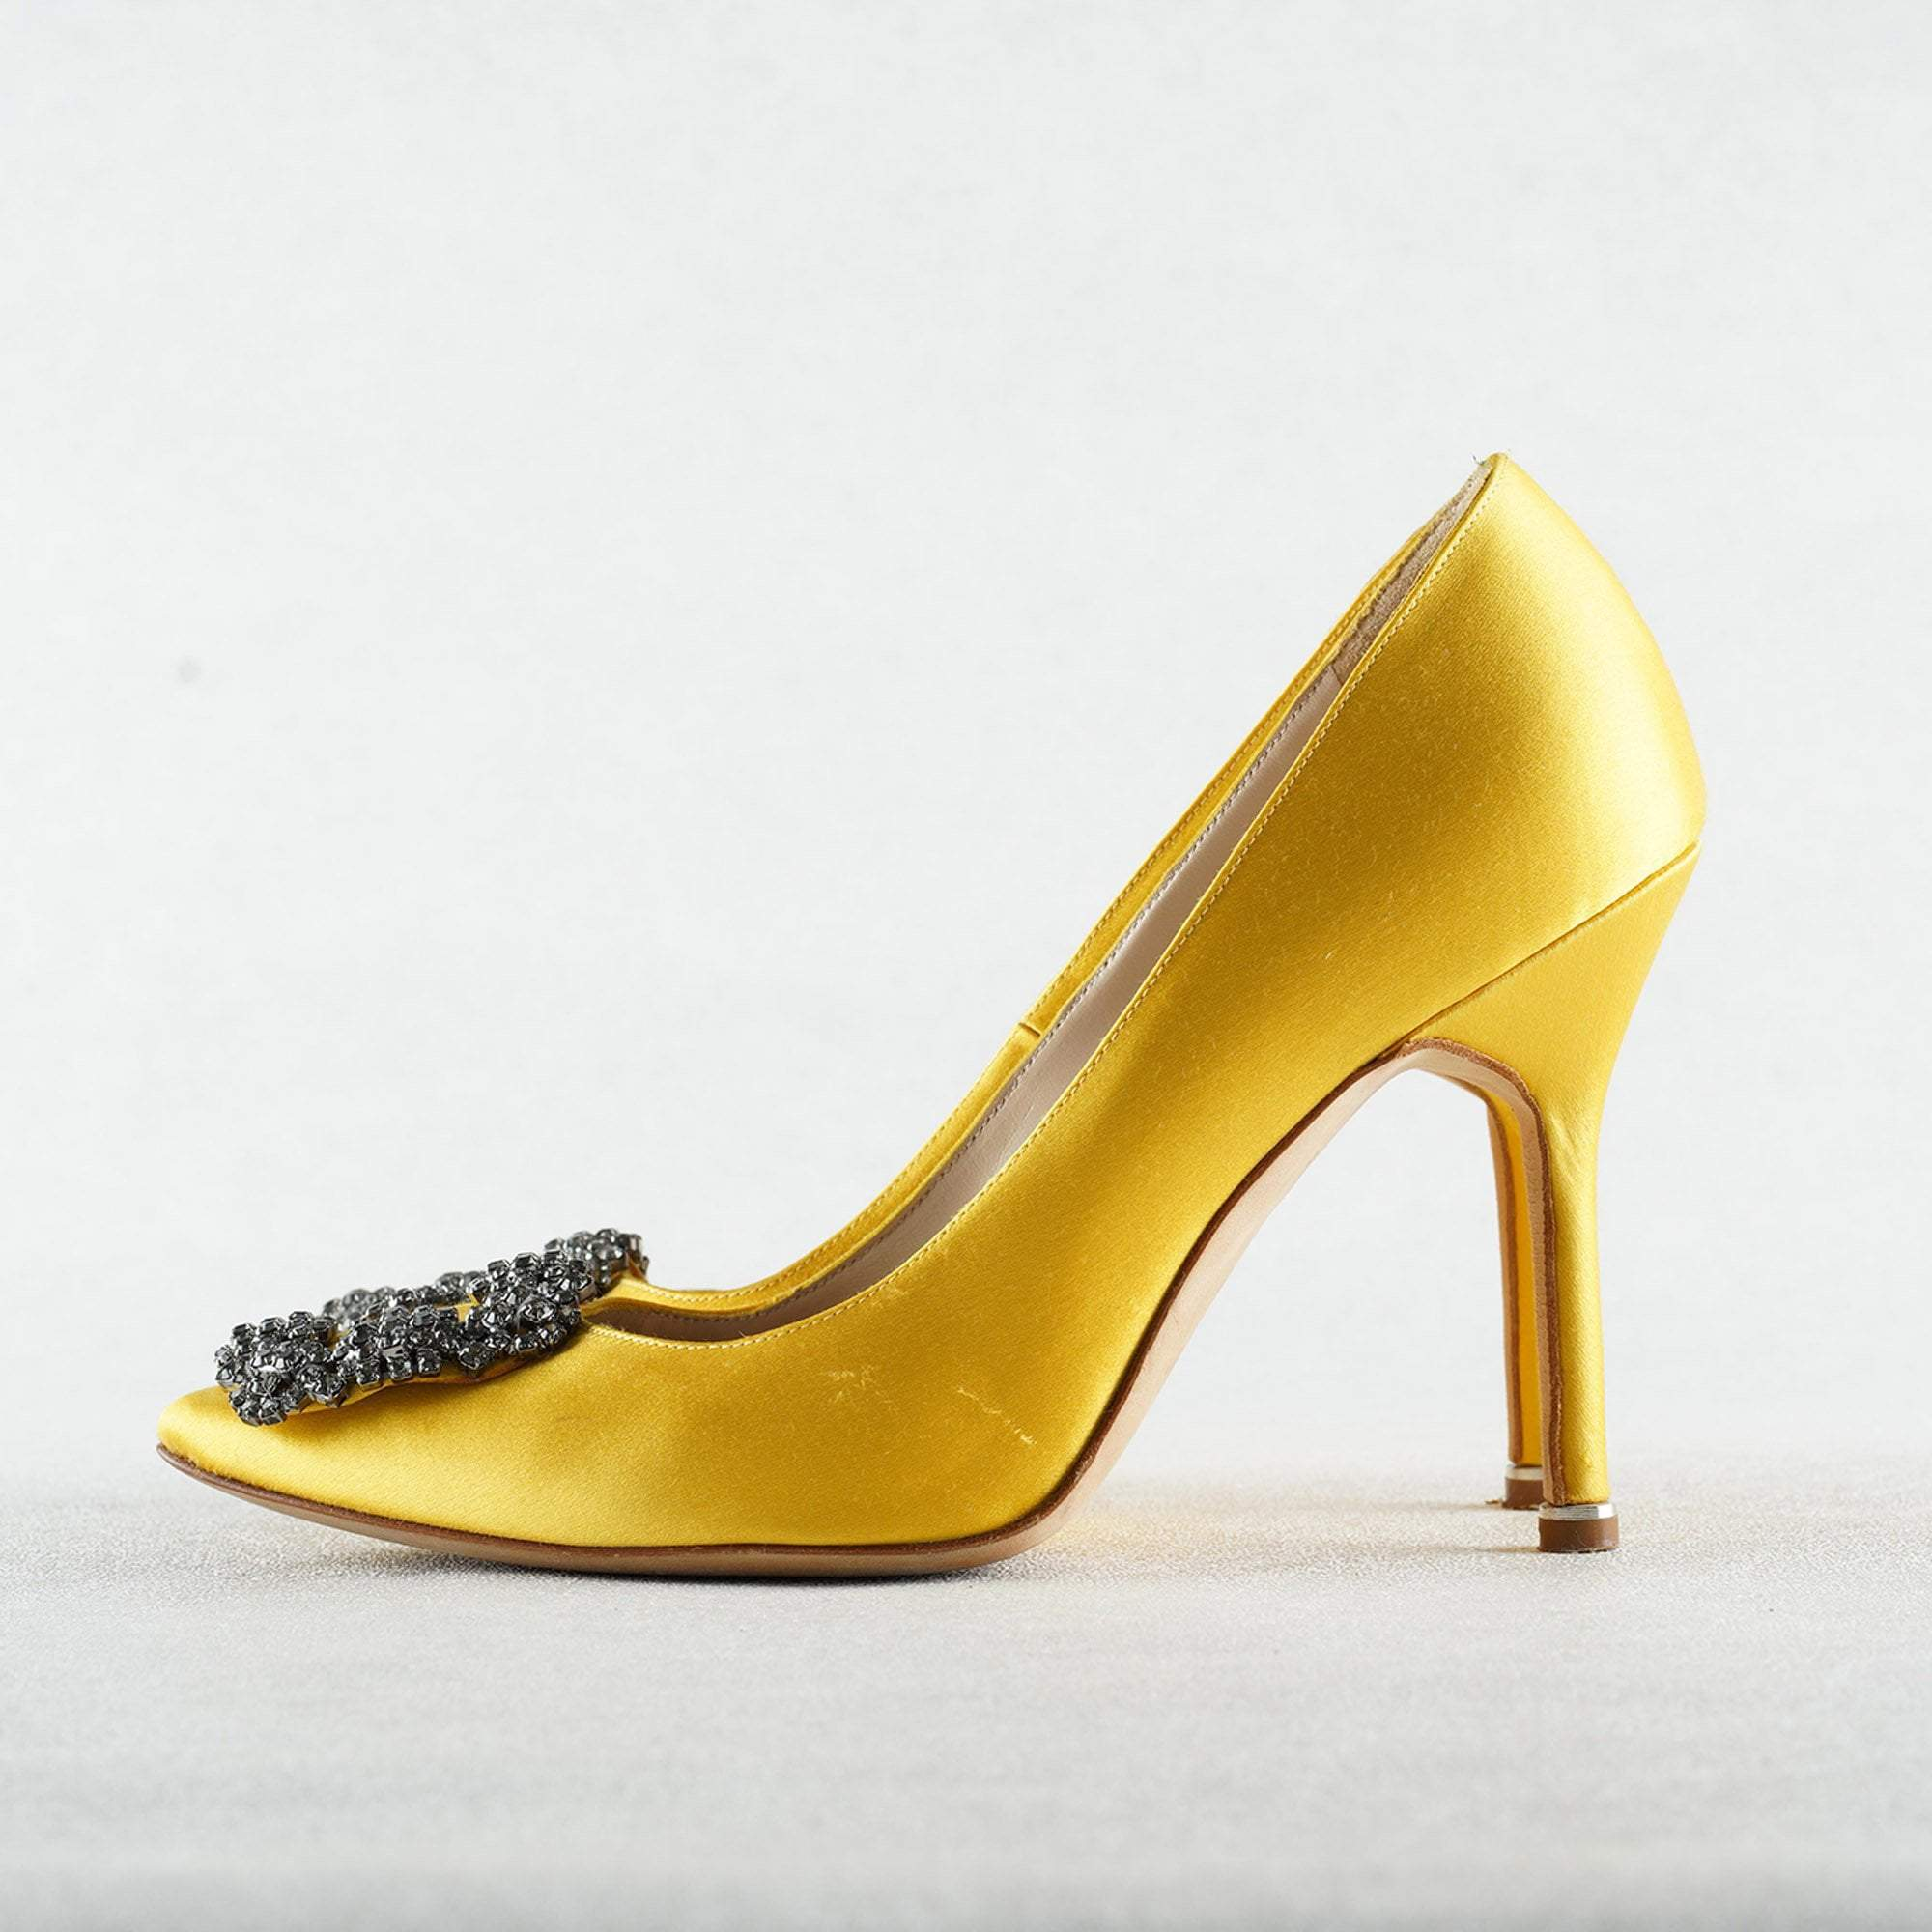 Manolo Blahnik Yellow Satin Hangisi Crystal Embellished Pumps